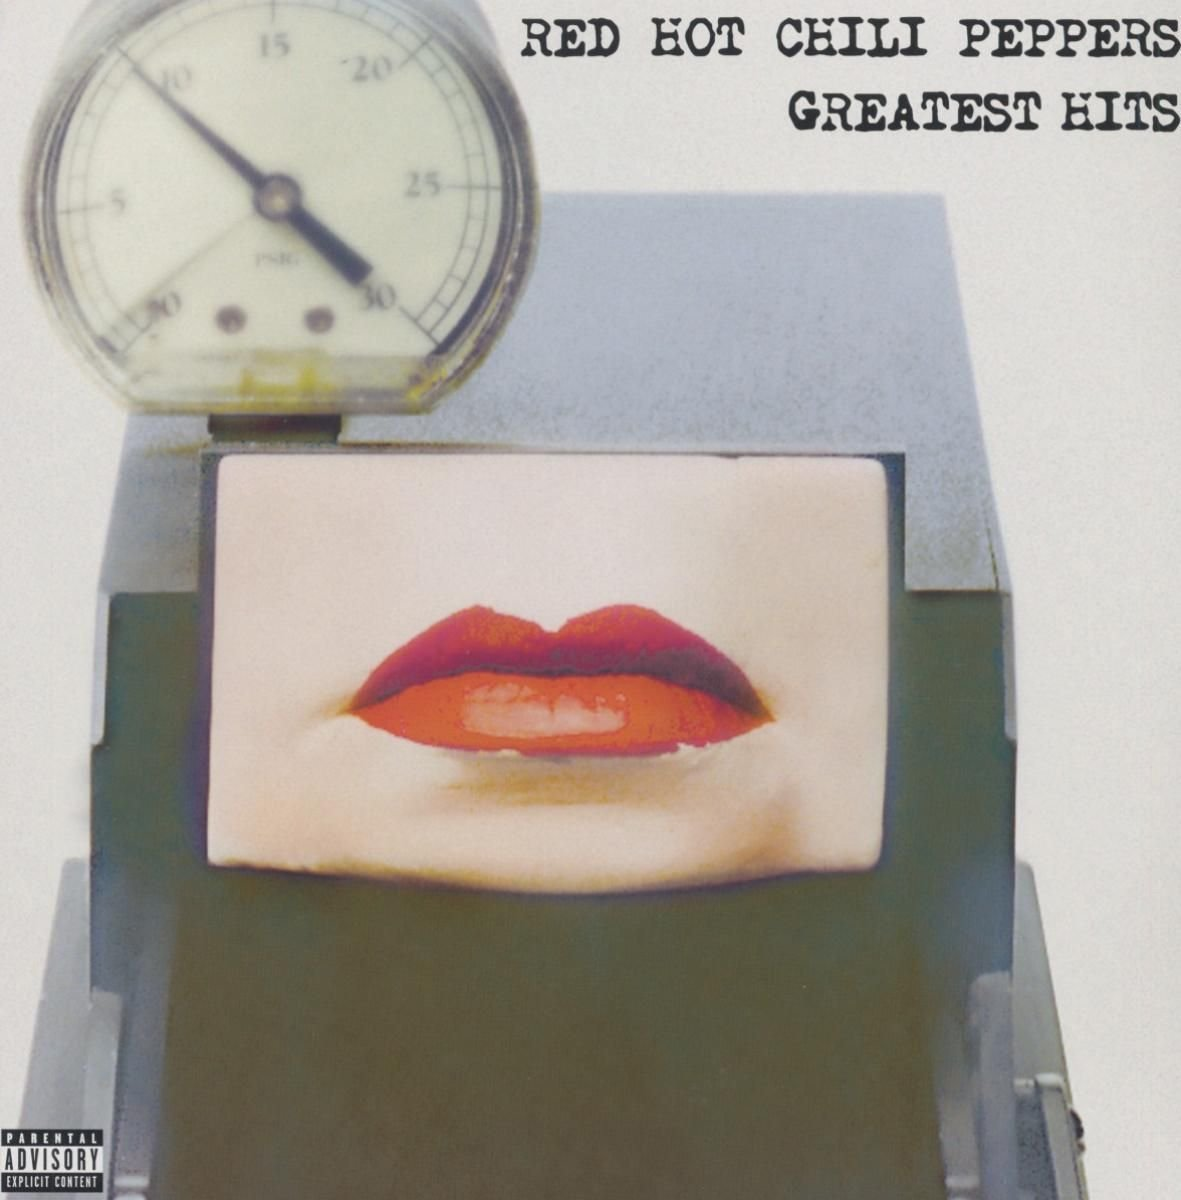 Vinilo : Red Hot Chili Peppers - Greatest Hits [Explicit Content] (2 Disc)